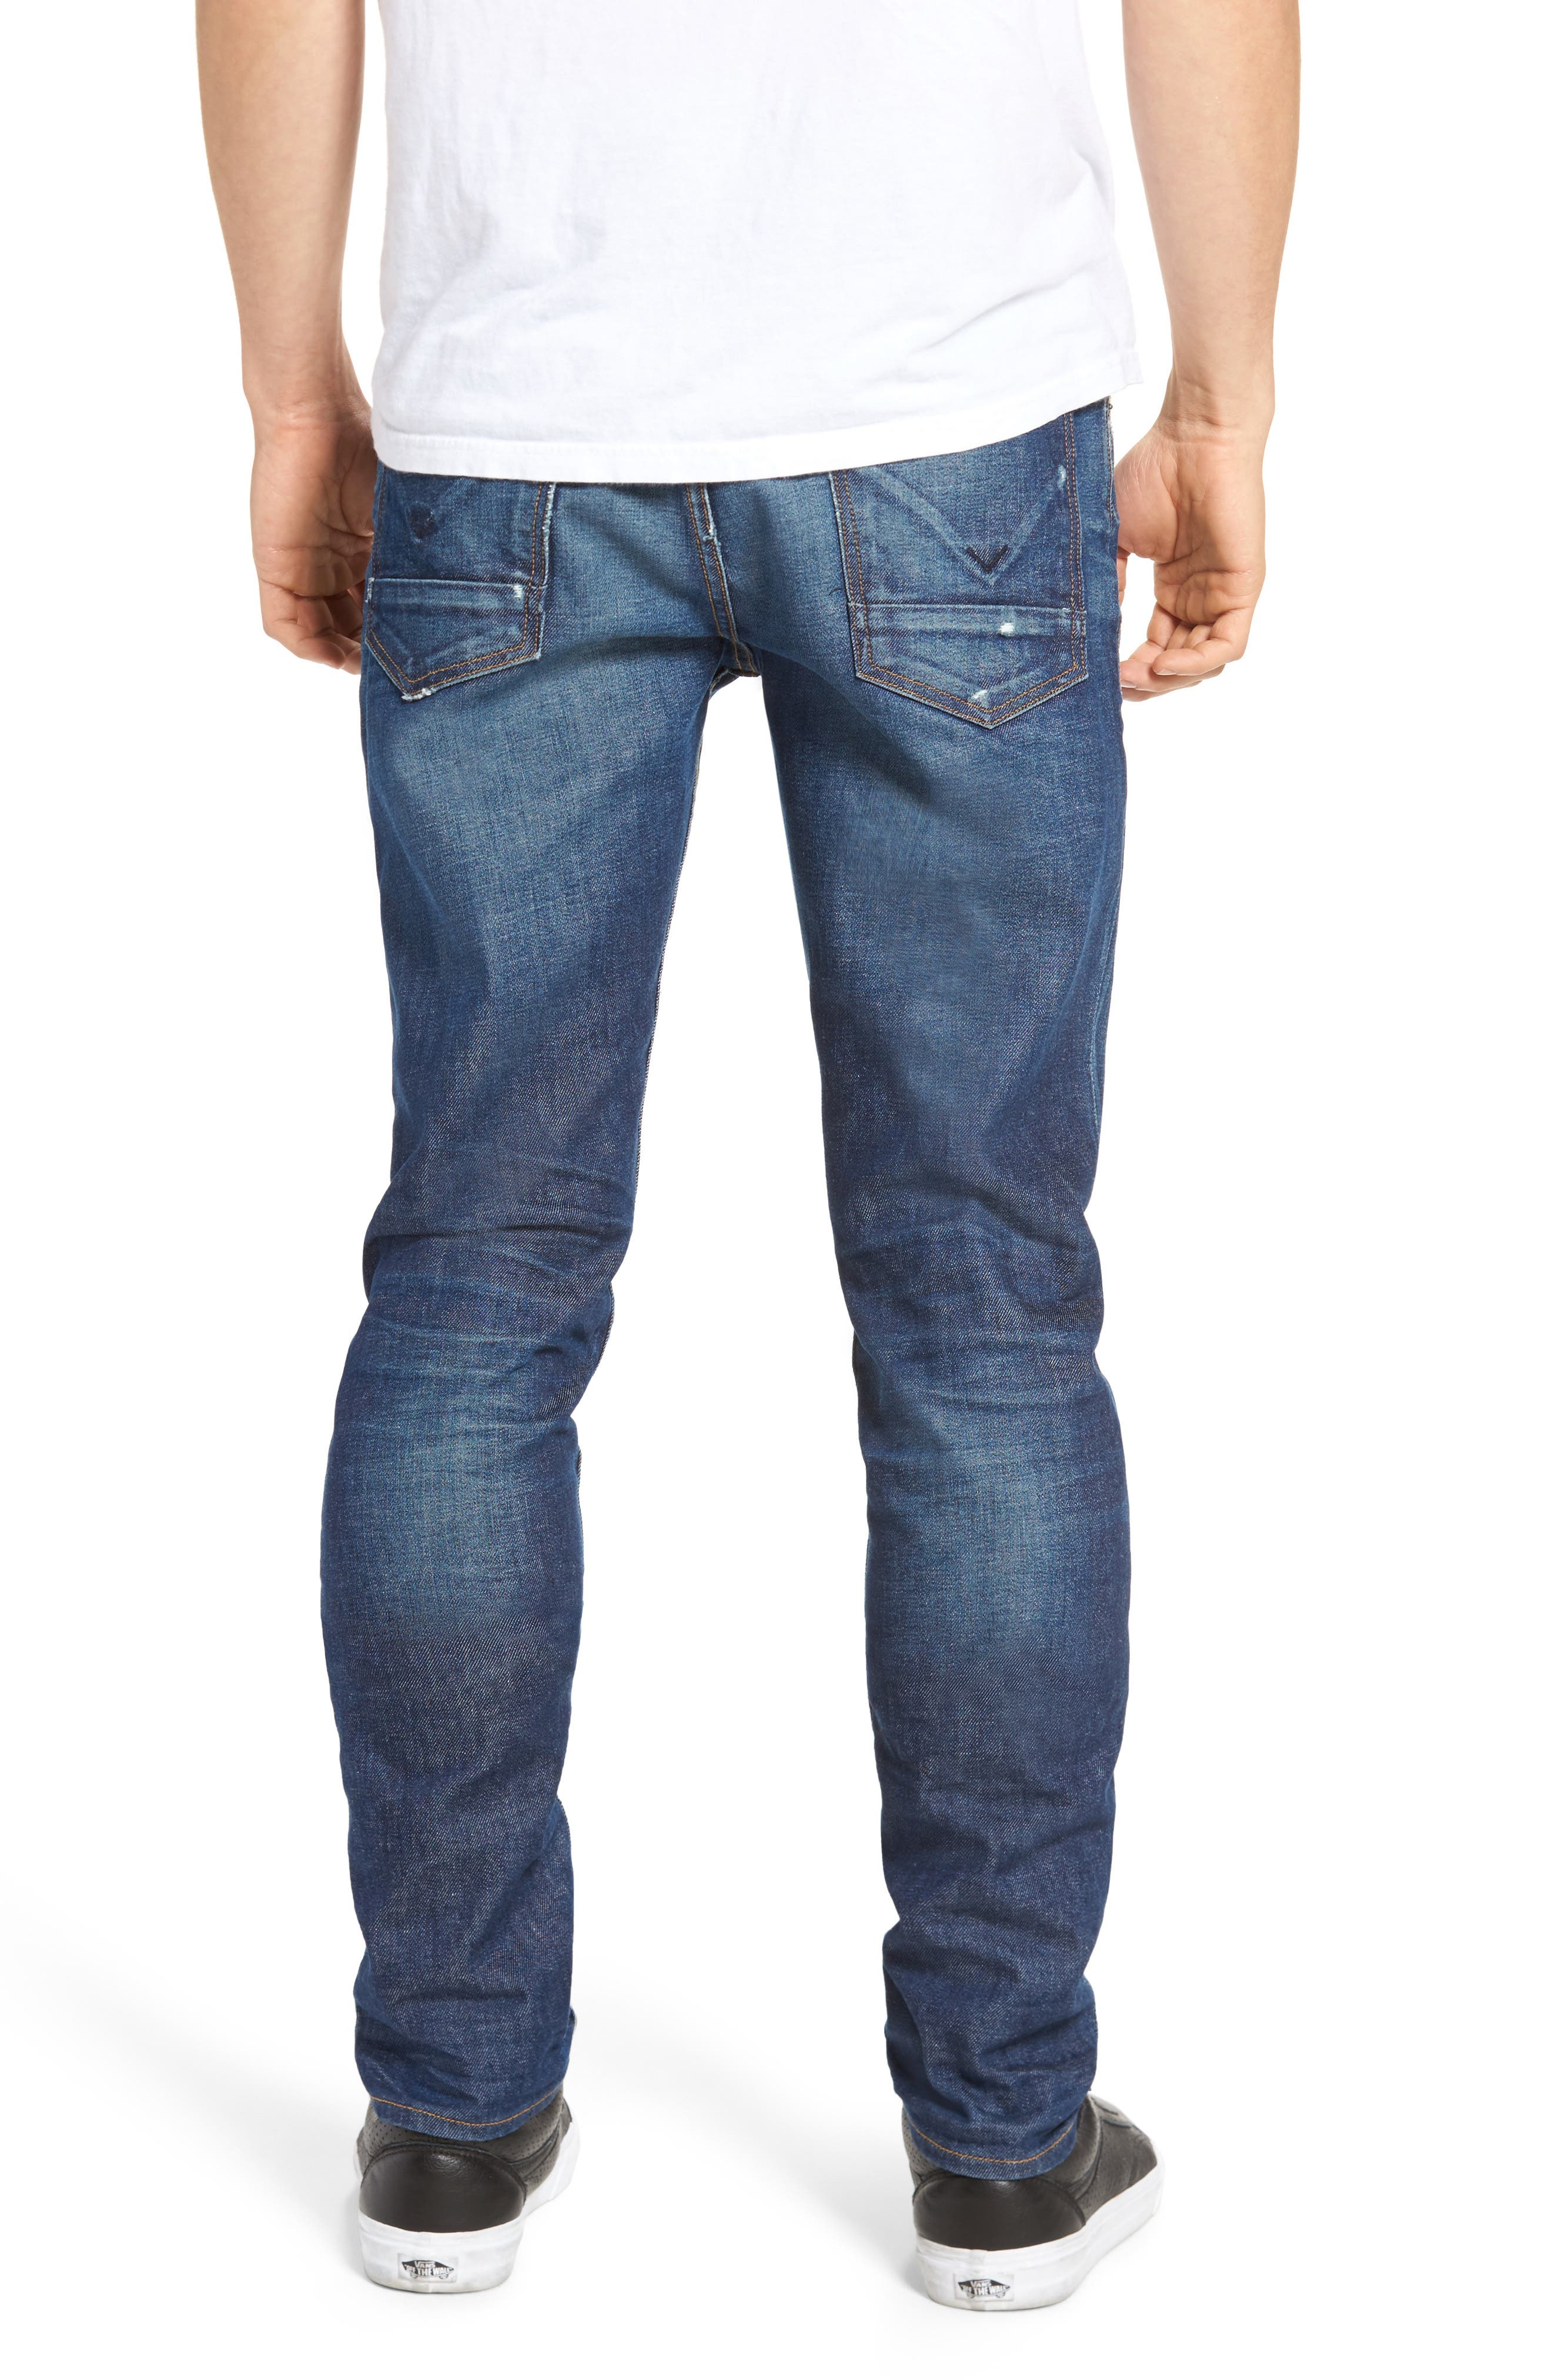 Axl Skinny Fit Jeans,                             Alternate thumbnail 2, color,                             423